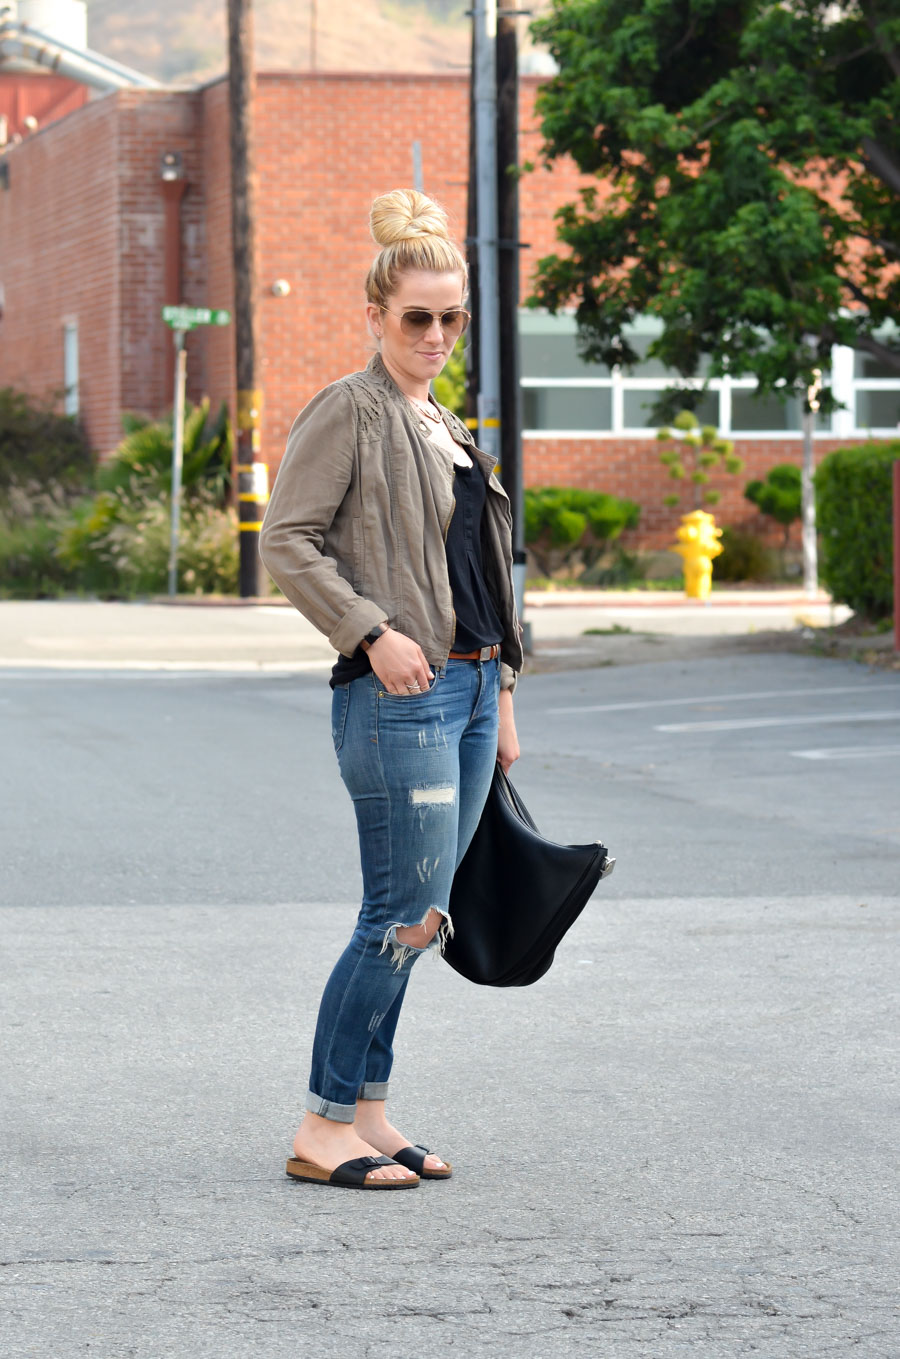 birkenstocks  jeans outfit idea for women  luci's morsels